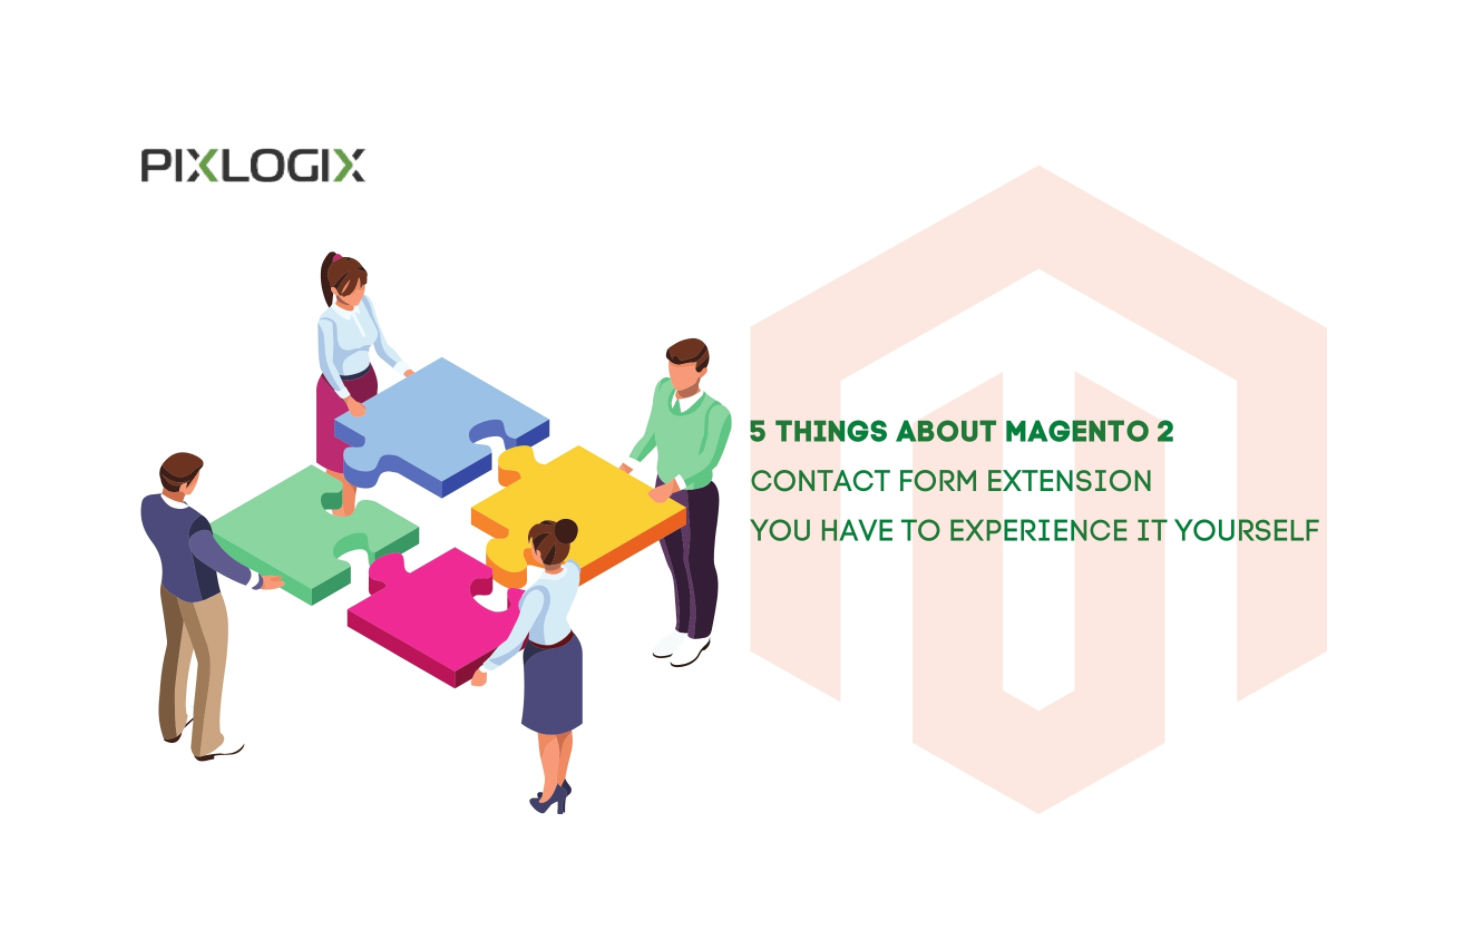 5 Things About Magento 2 Contact Form Extension You Have To Experience It Yourself.1